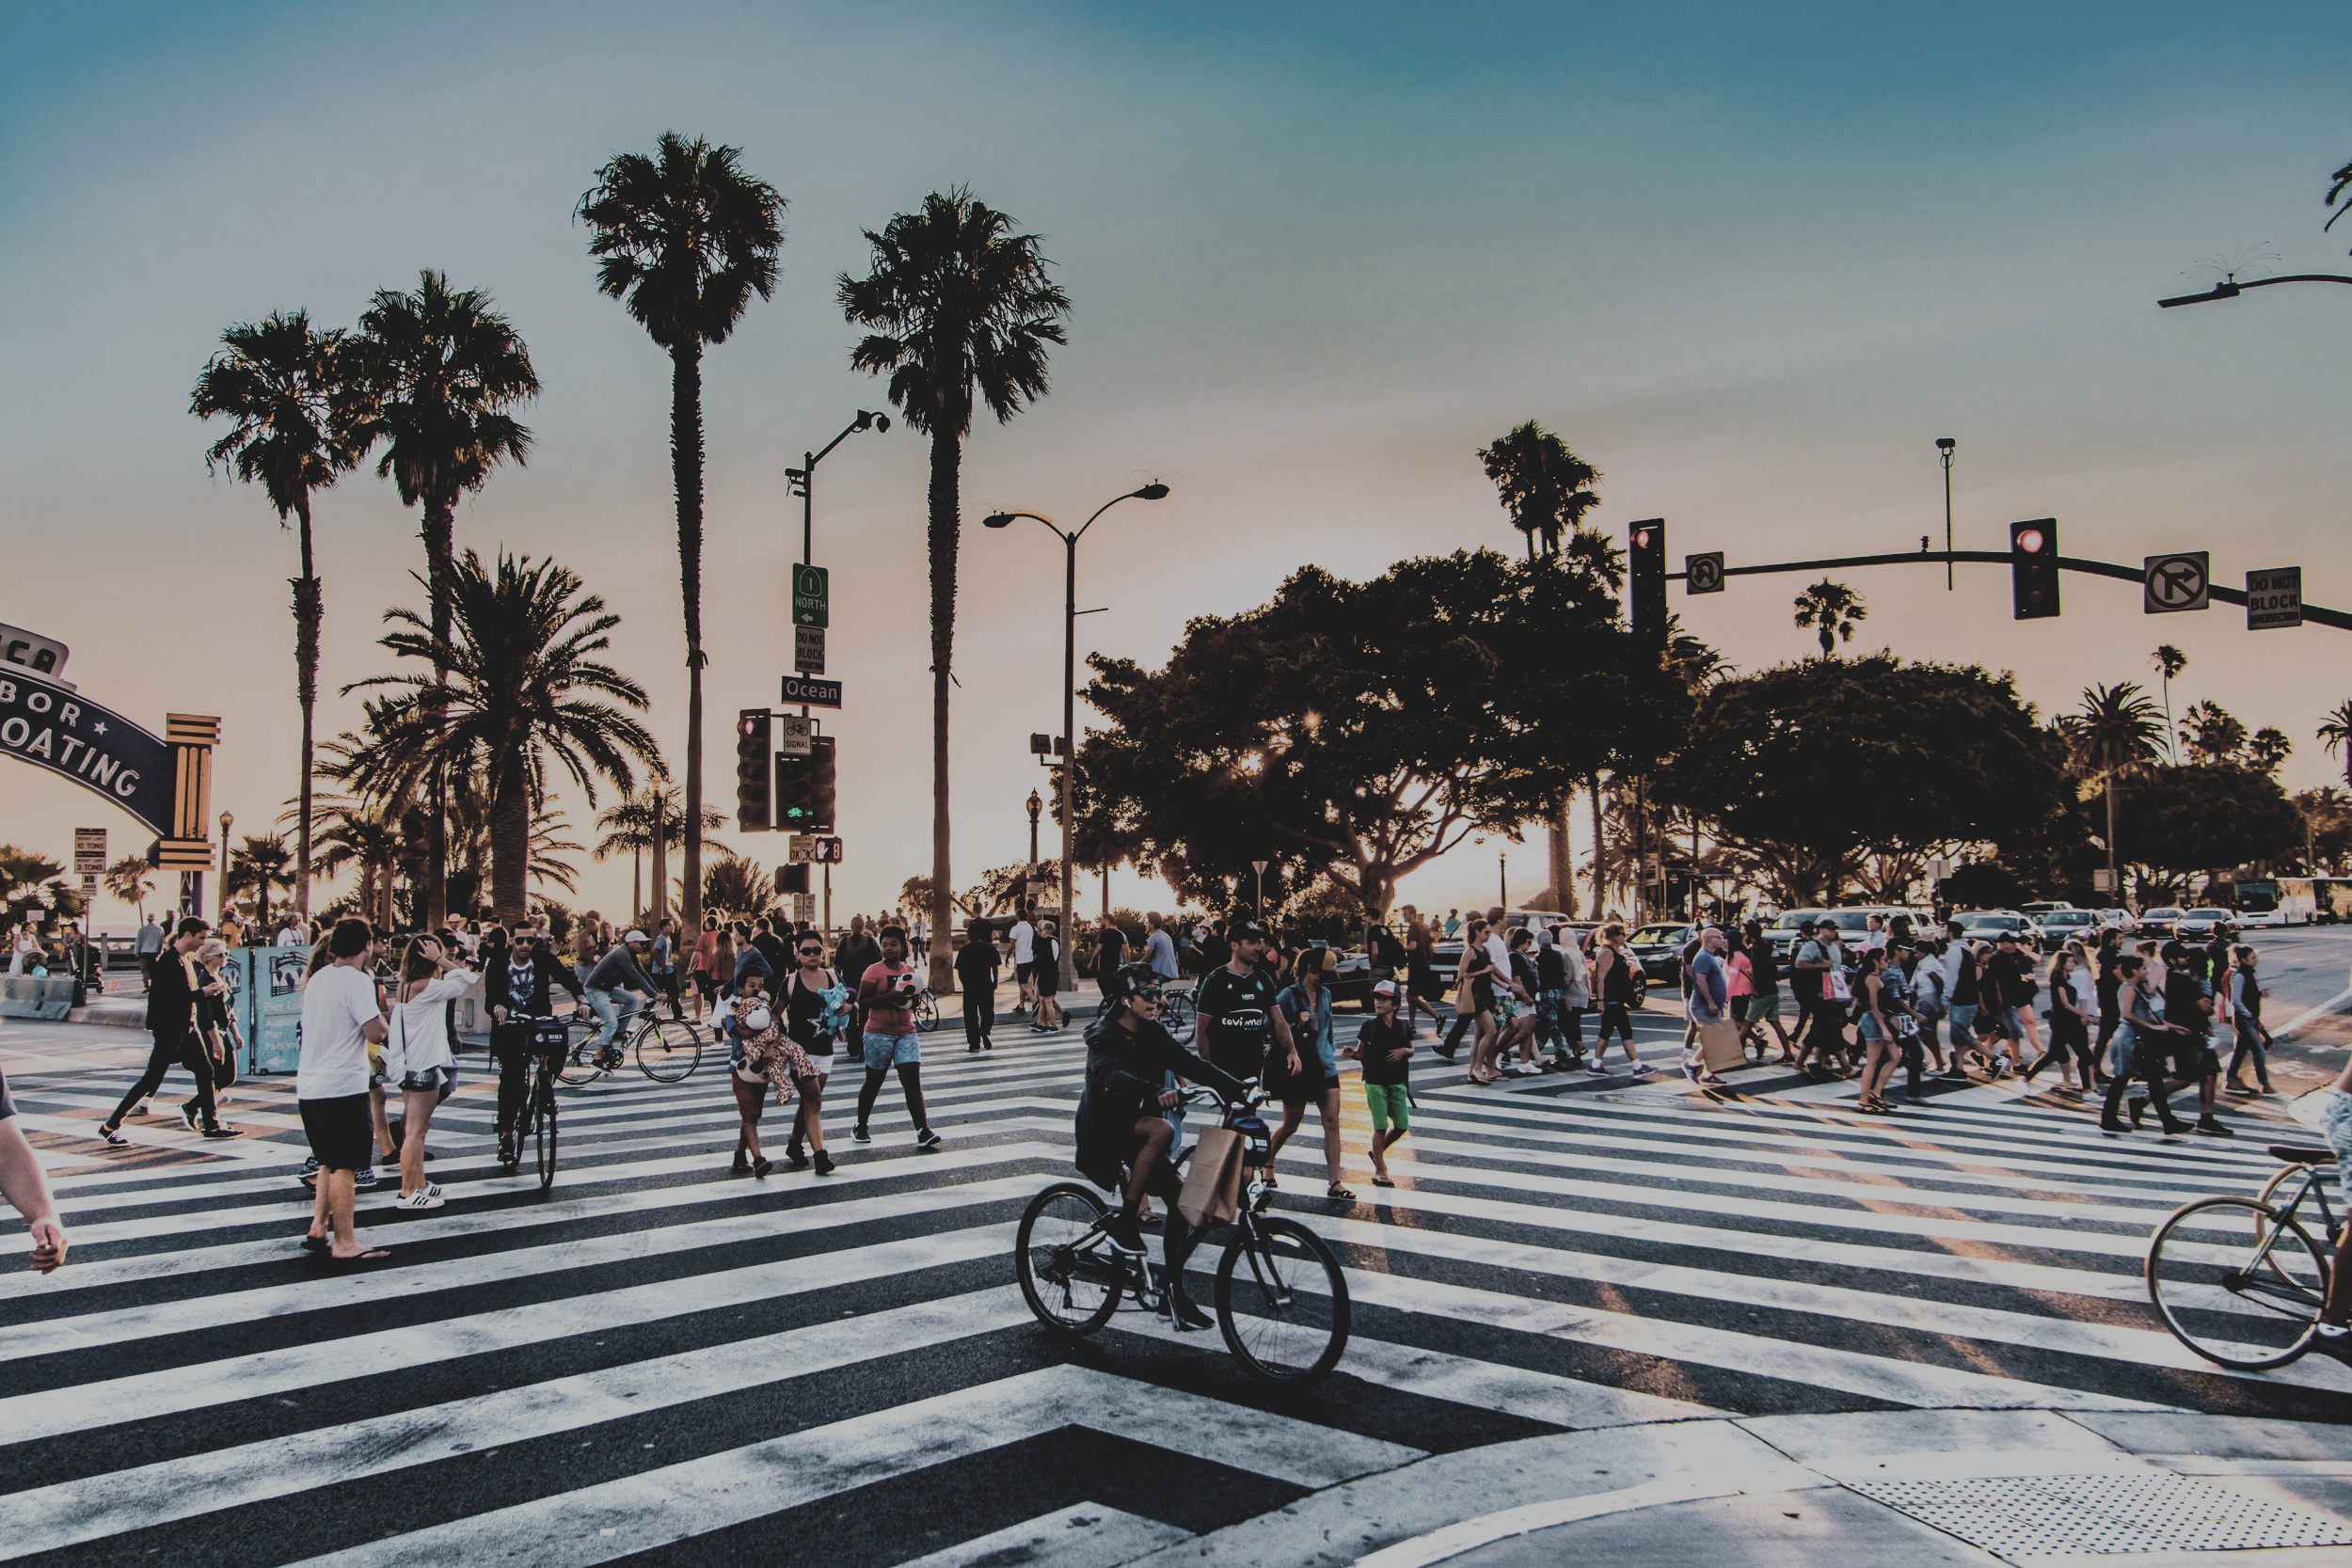 Walkability is highly desirable -